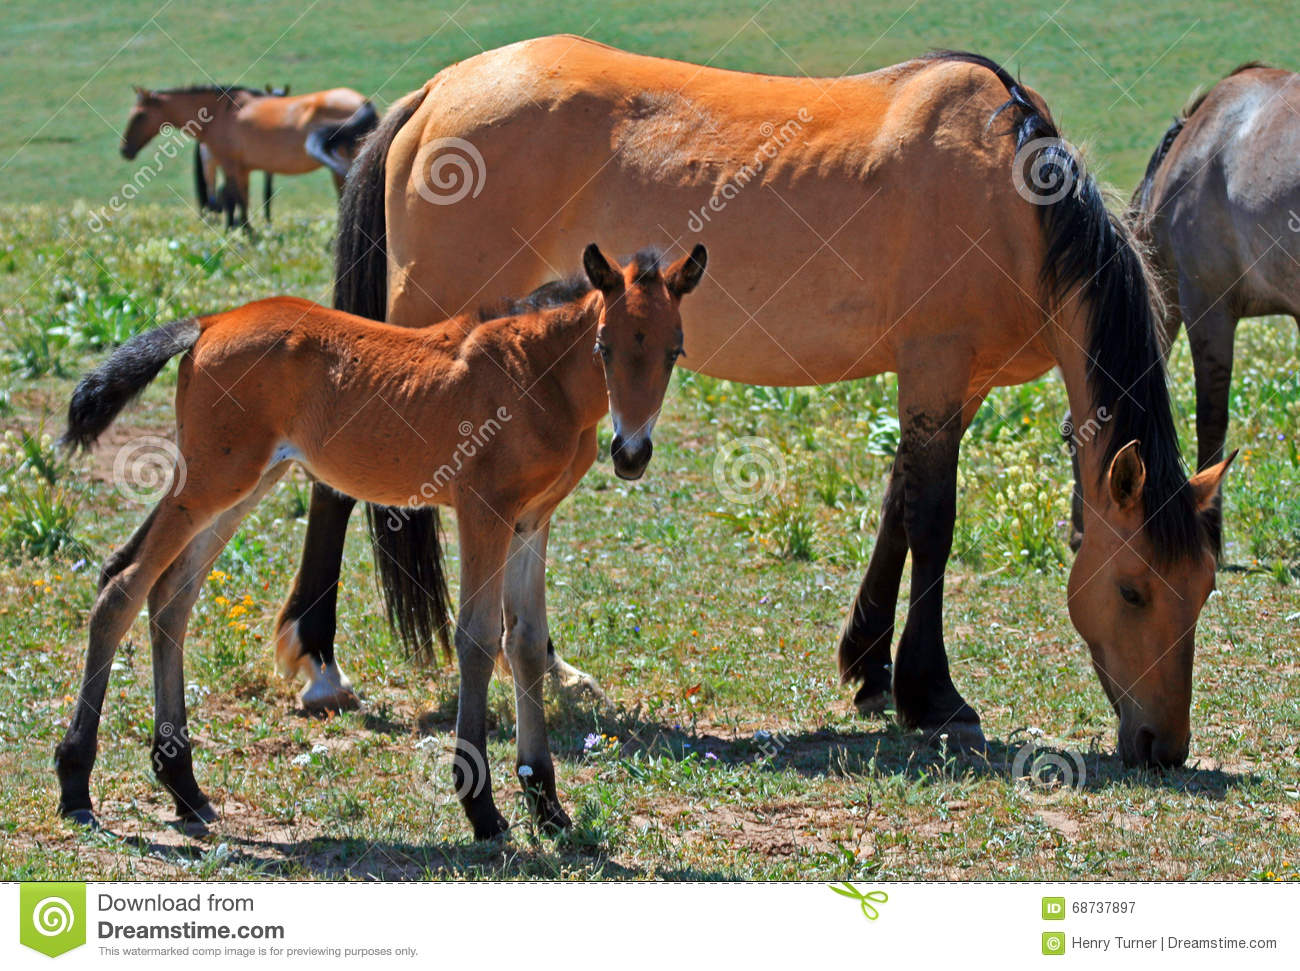 3 052 Filly Baby Horse Photos Free Royalty Free Stock Photos From Dreamstime